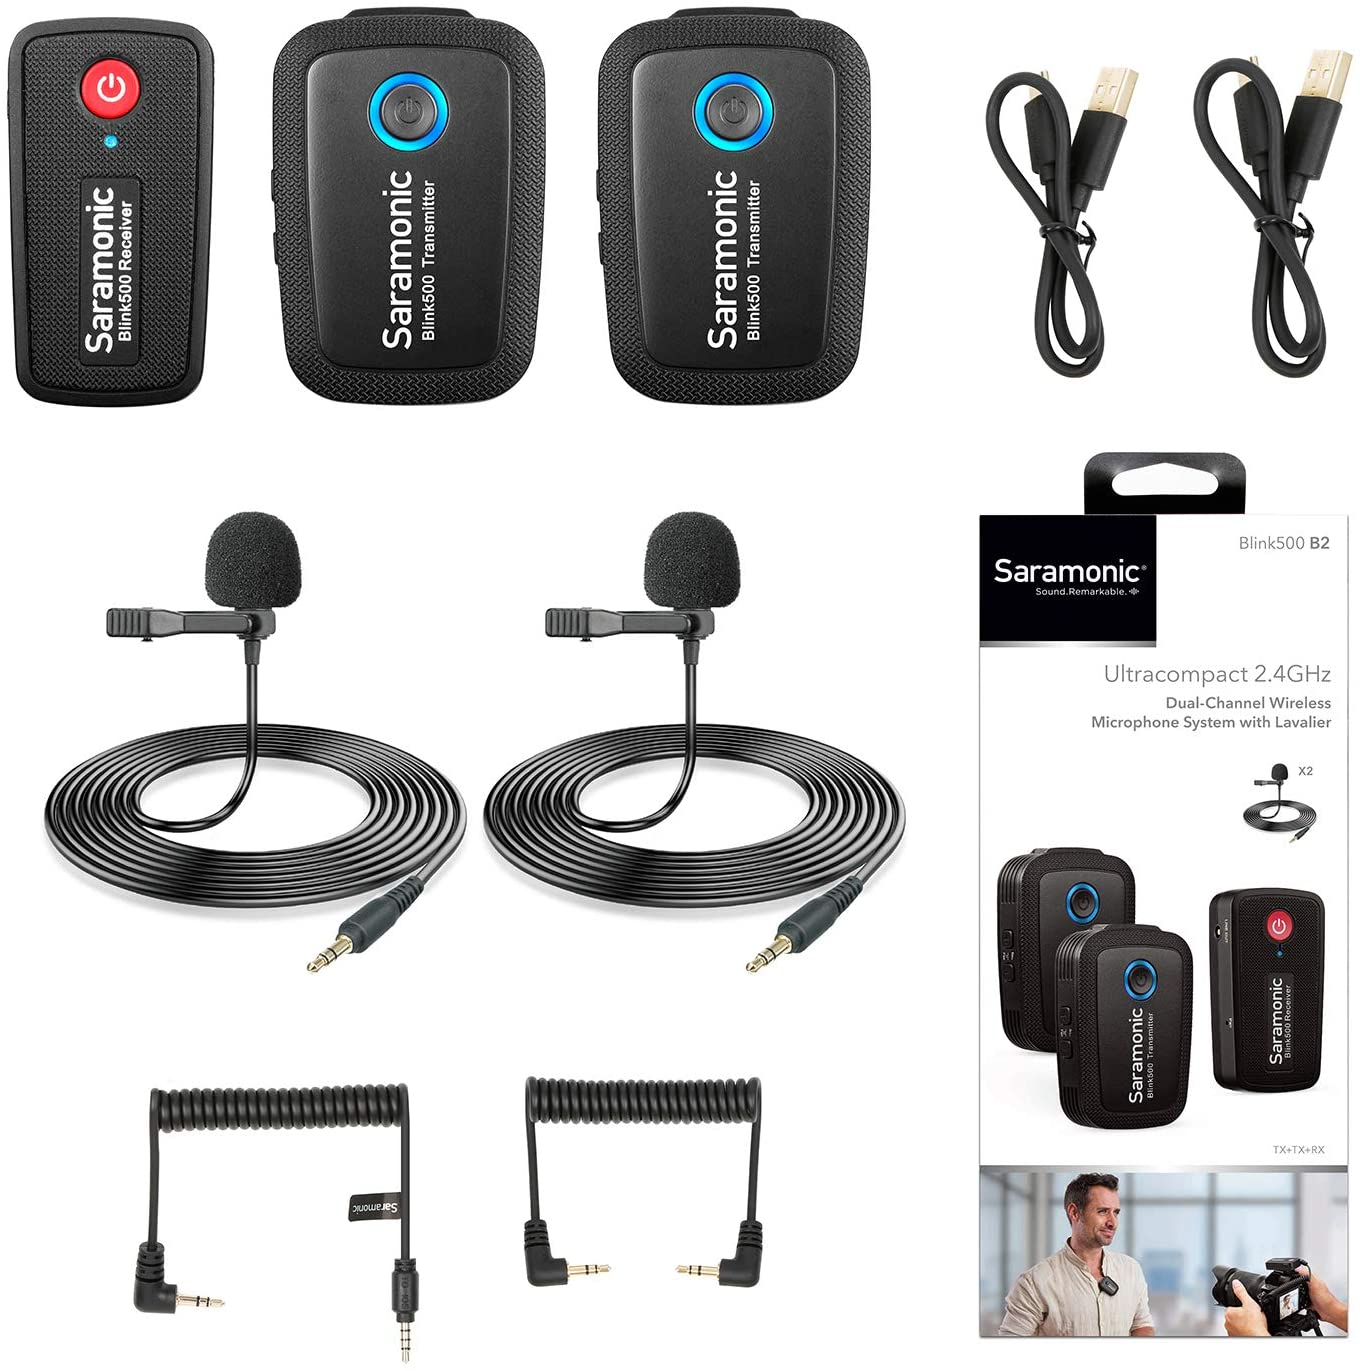 2.4GHz Wireless Lavalier Microphone System for Video,Saramonic Blink500 B2 Dual-Channel Mic Two Transmitters for DSLR Camera, Mirrorless, and Smartphone for YouTube Facebook Live Vlogging